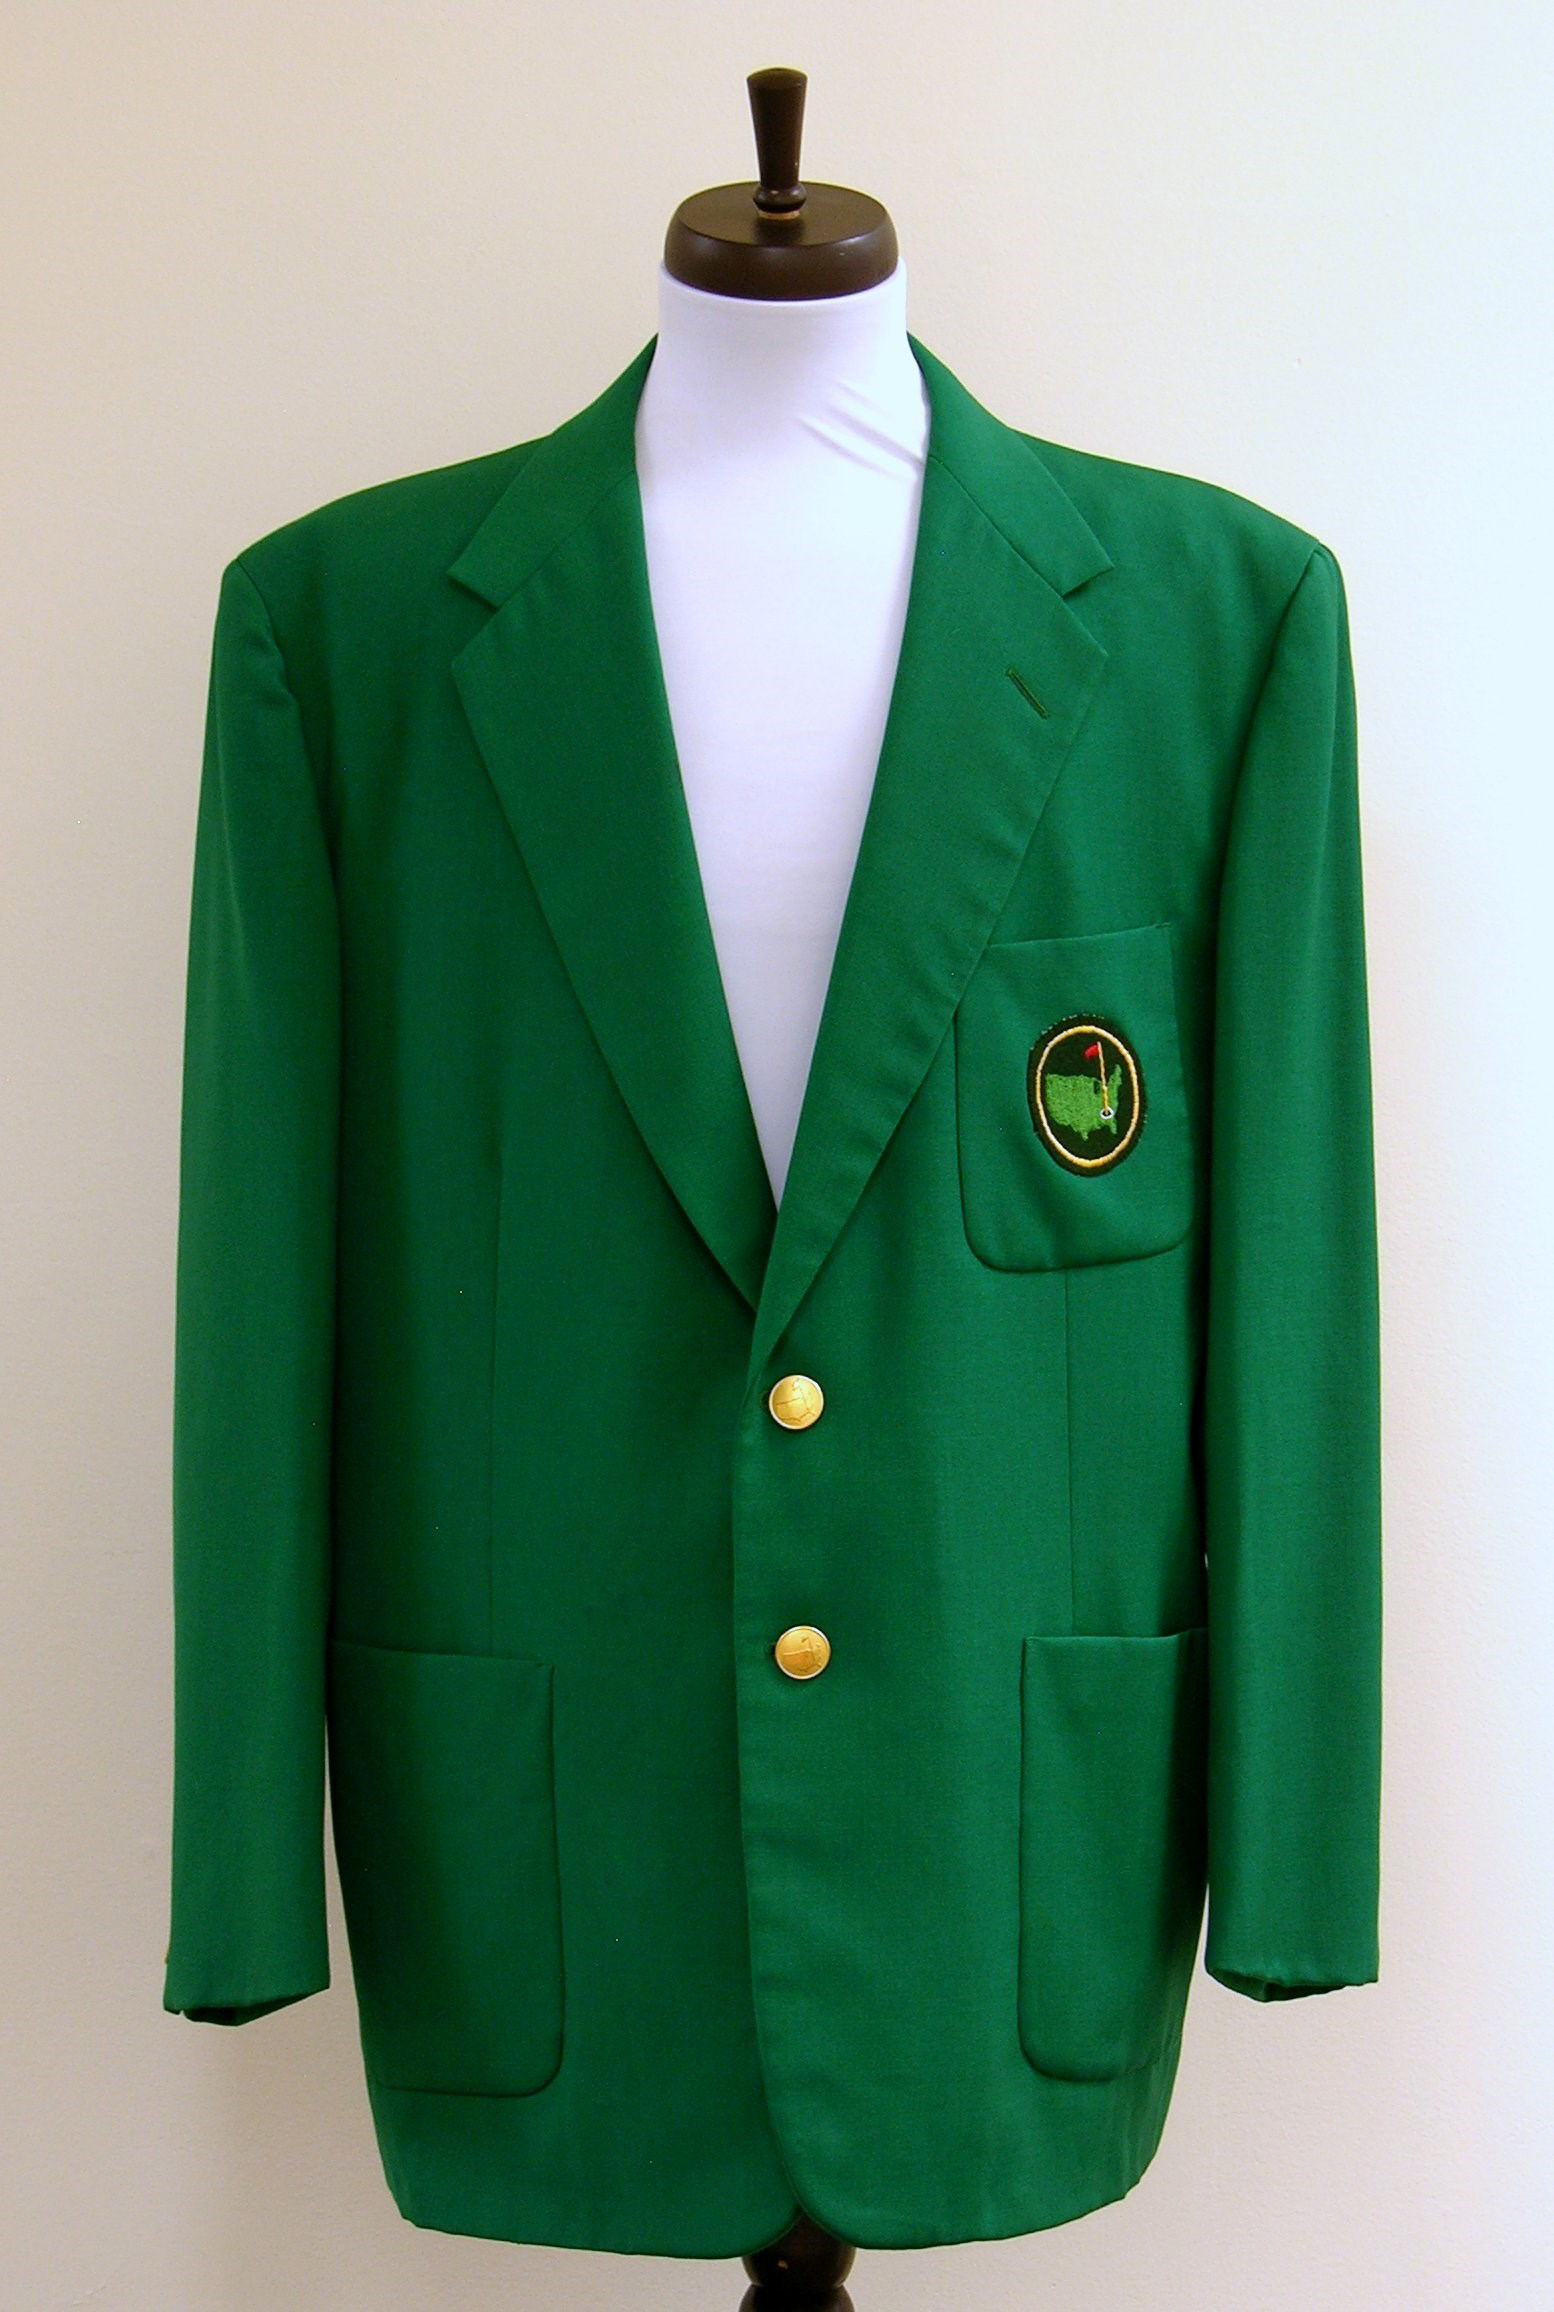 Masters Green Jacket Found In Thrift Store Sold At Auction For Nearly 140 000 Golf World Golf Digest